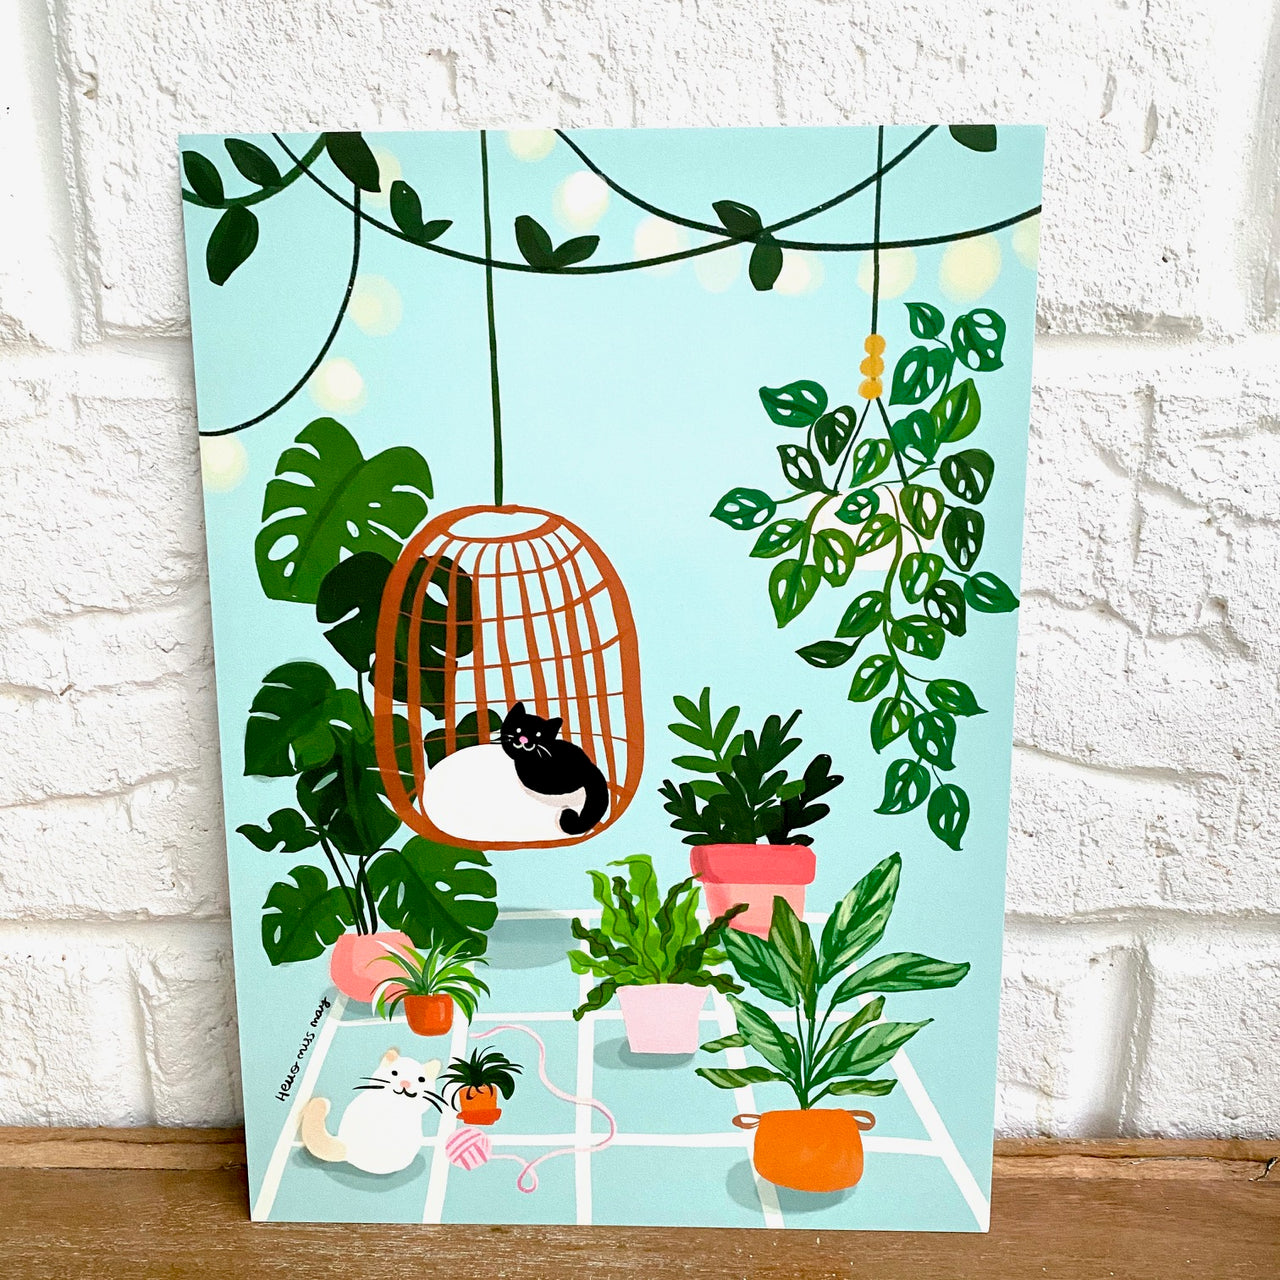 Botanical Home with Two Cats print, by Hello Miss May. Australian Art Prints. Green Door Decor. www.greendoordecor.com.au